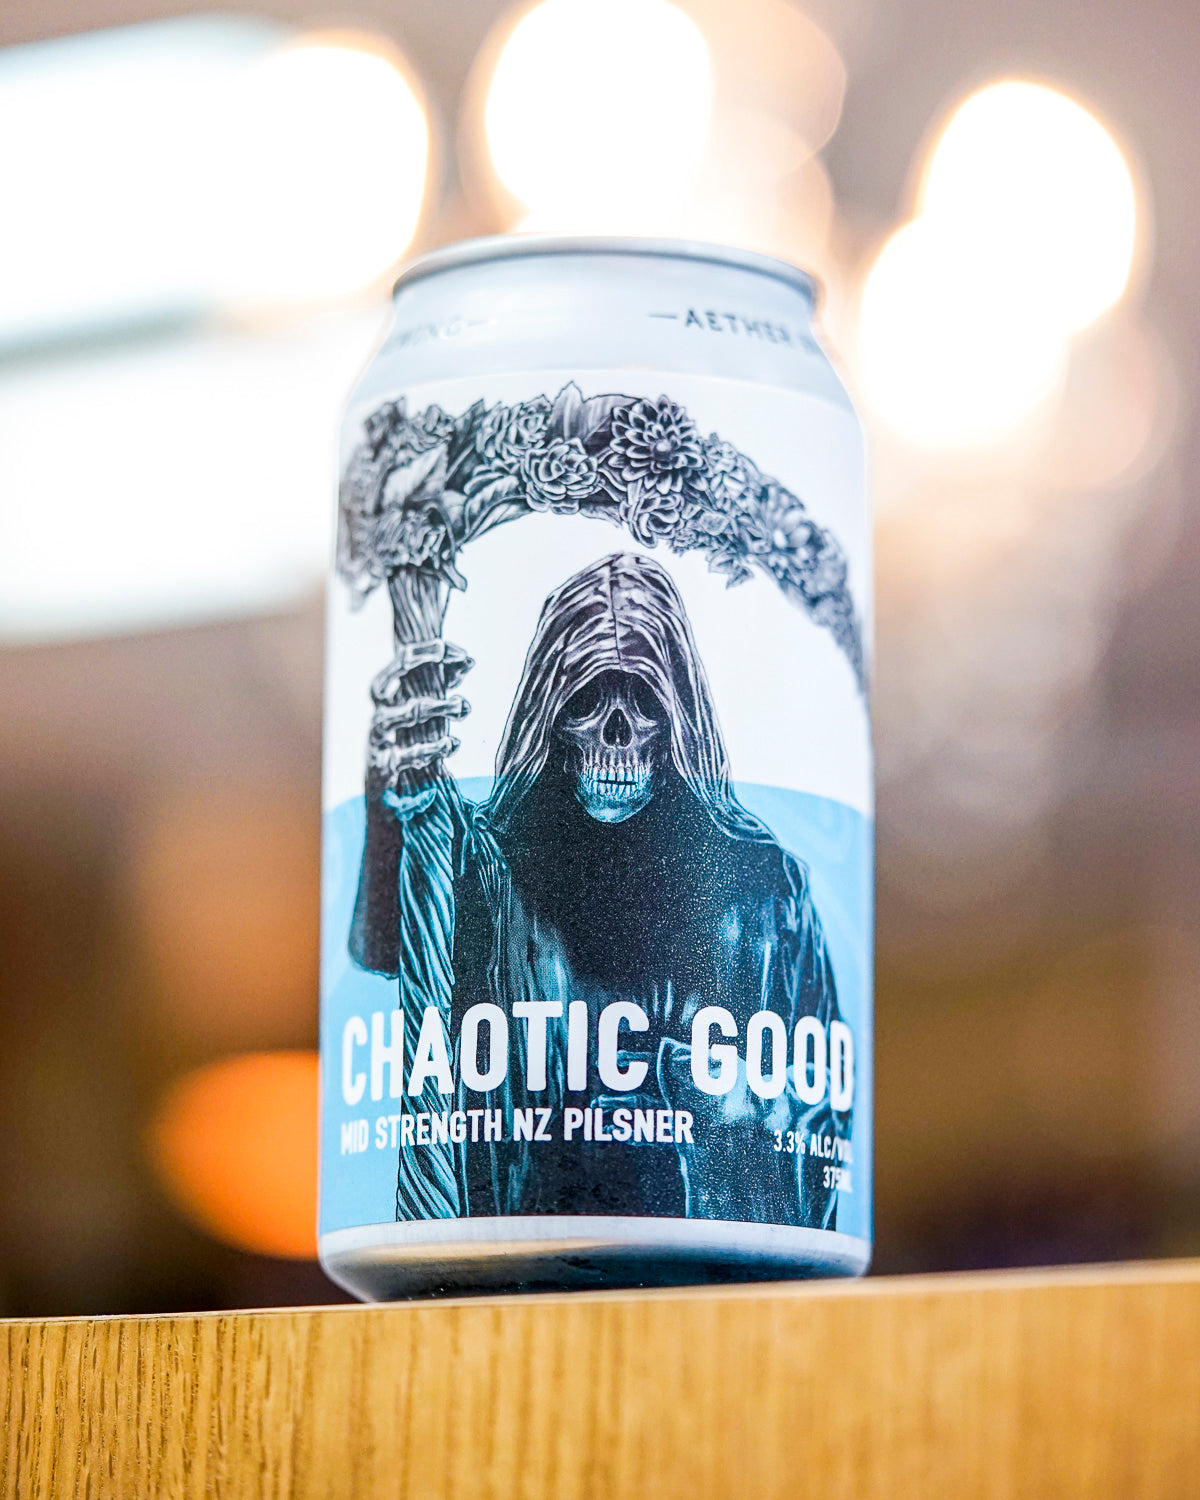 Aether 'Chaotic Good' Mid Strength NZ Pilsner 375mL